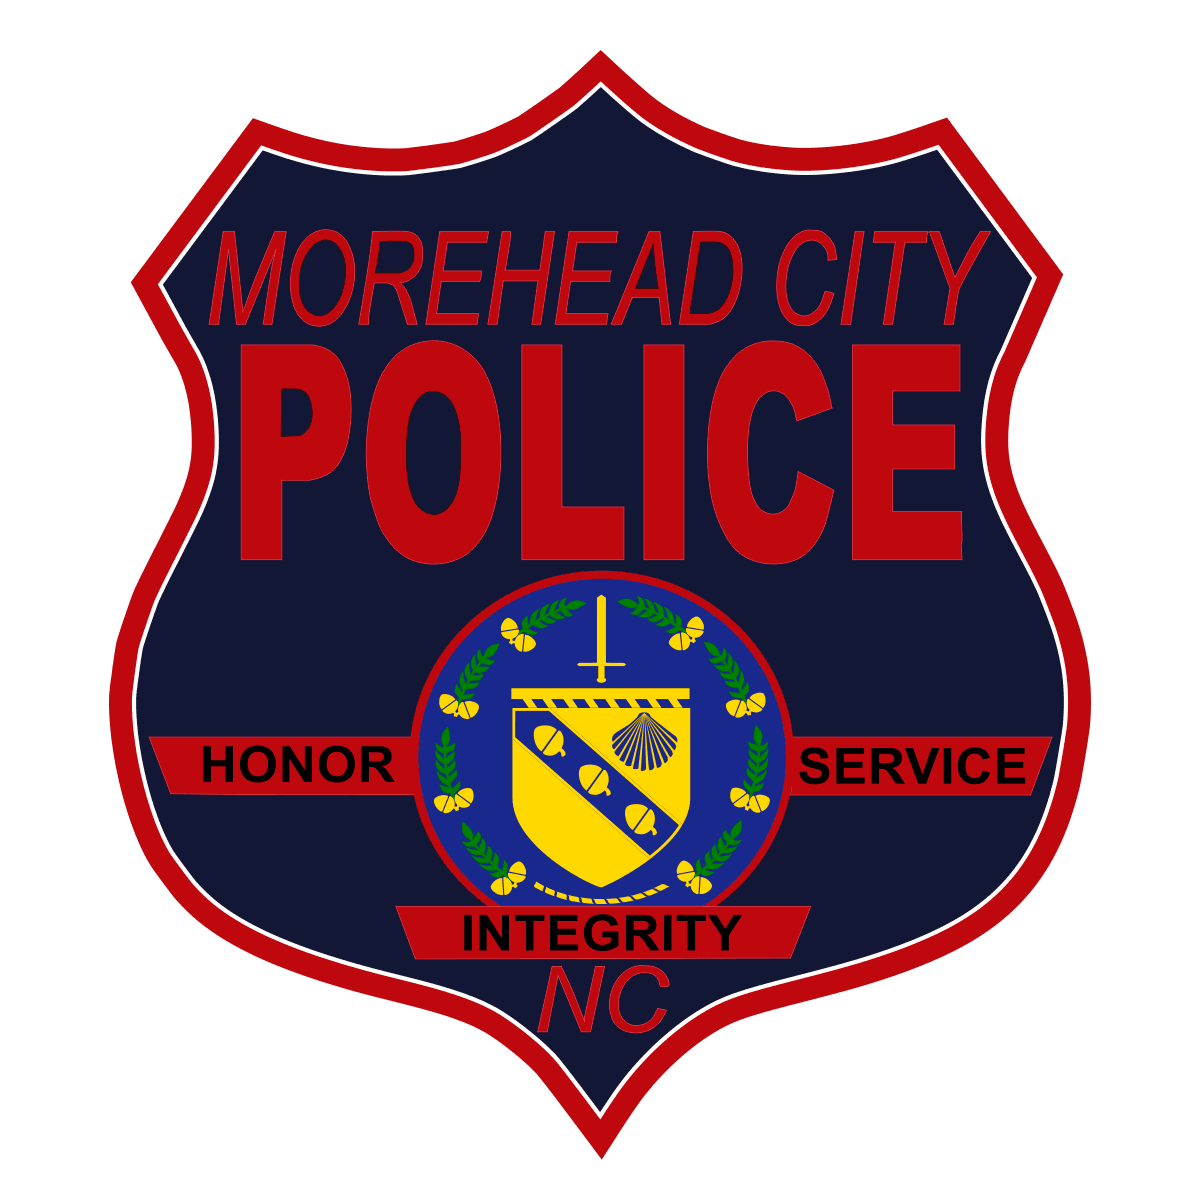 Morehead City Police Department Patch